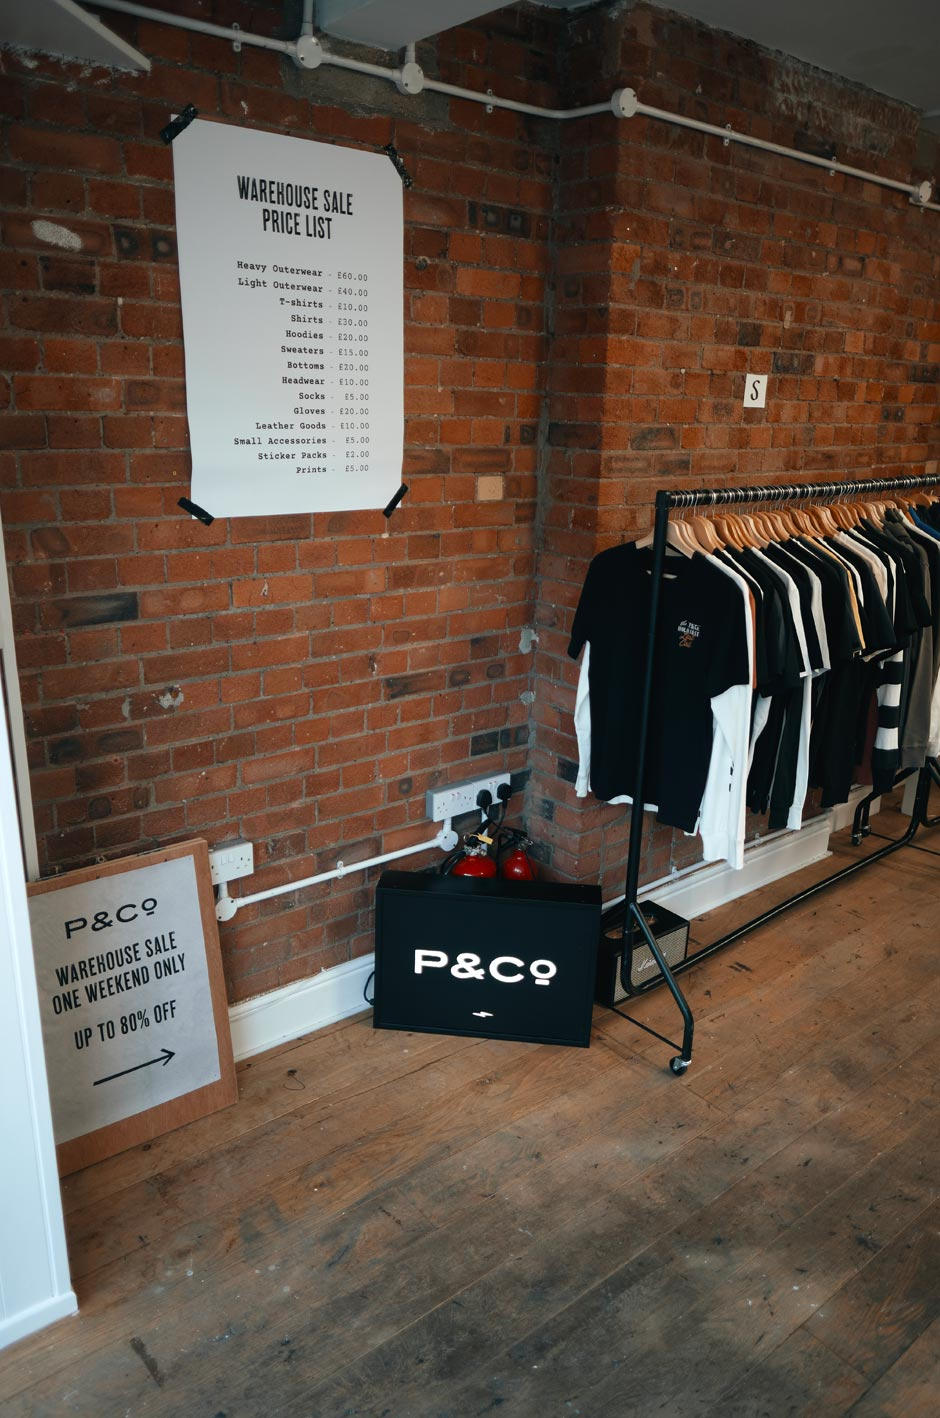 P&Co Warehouse Sale Price List